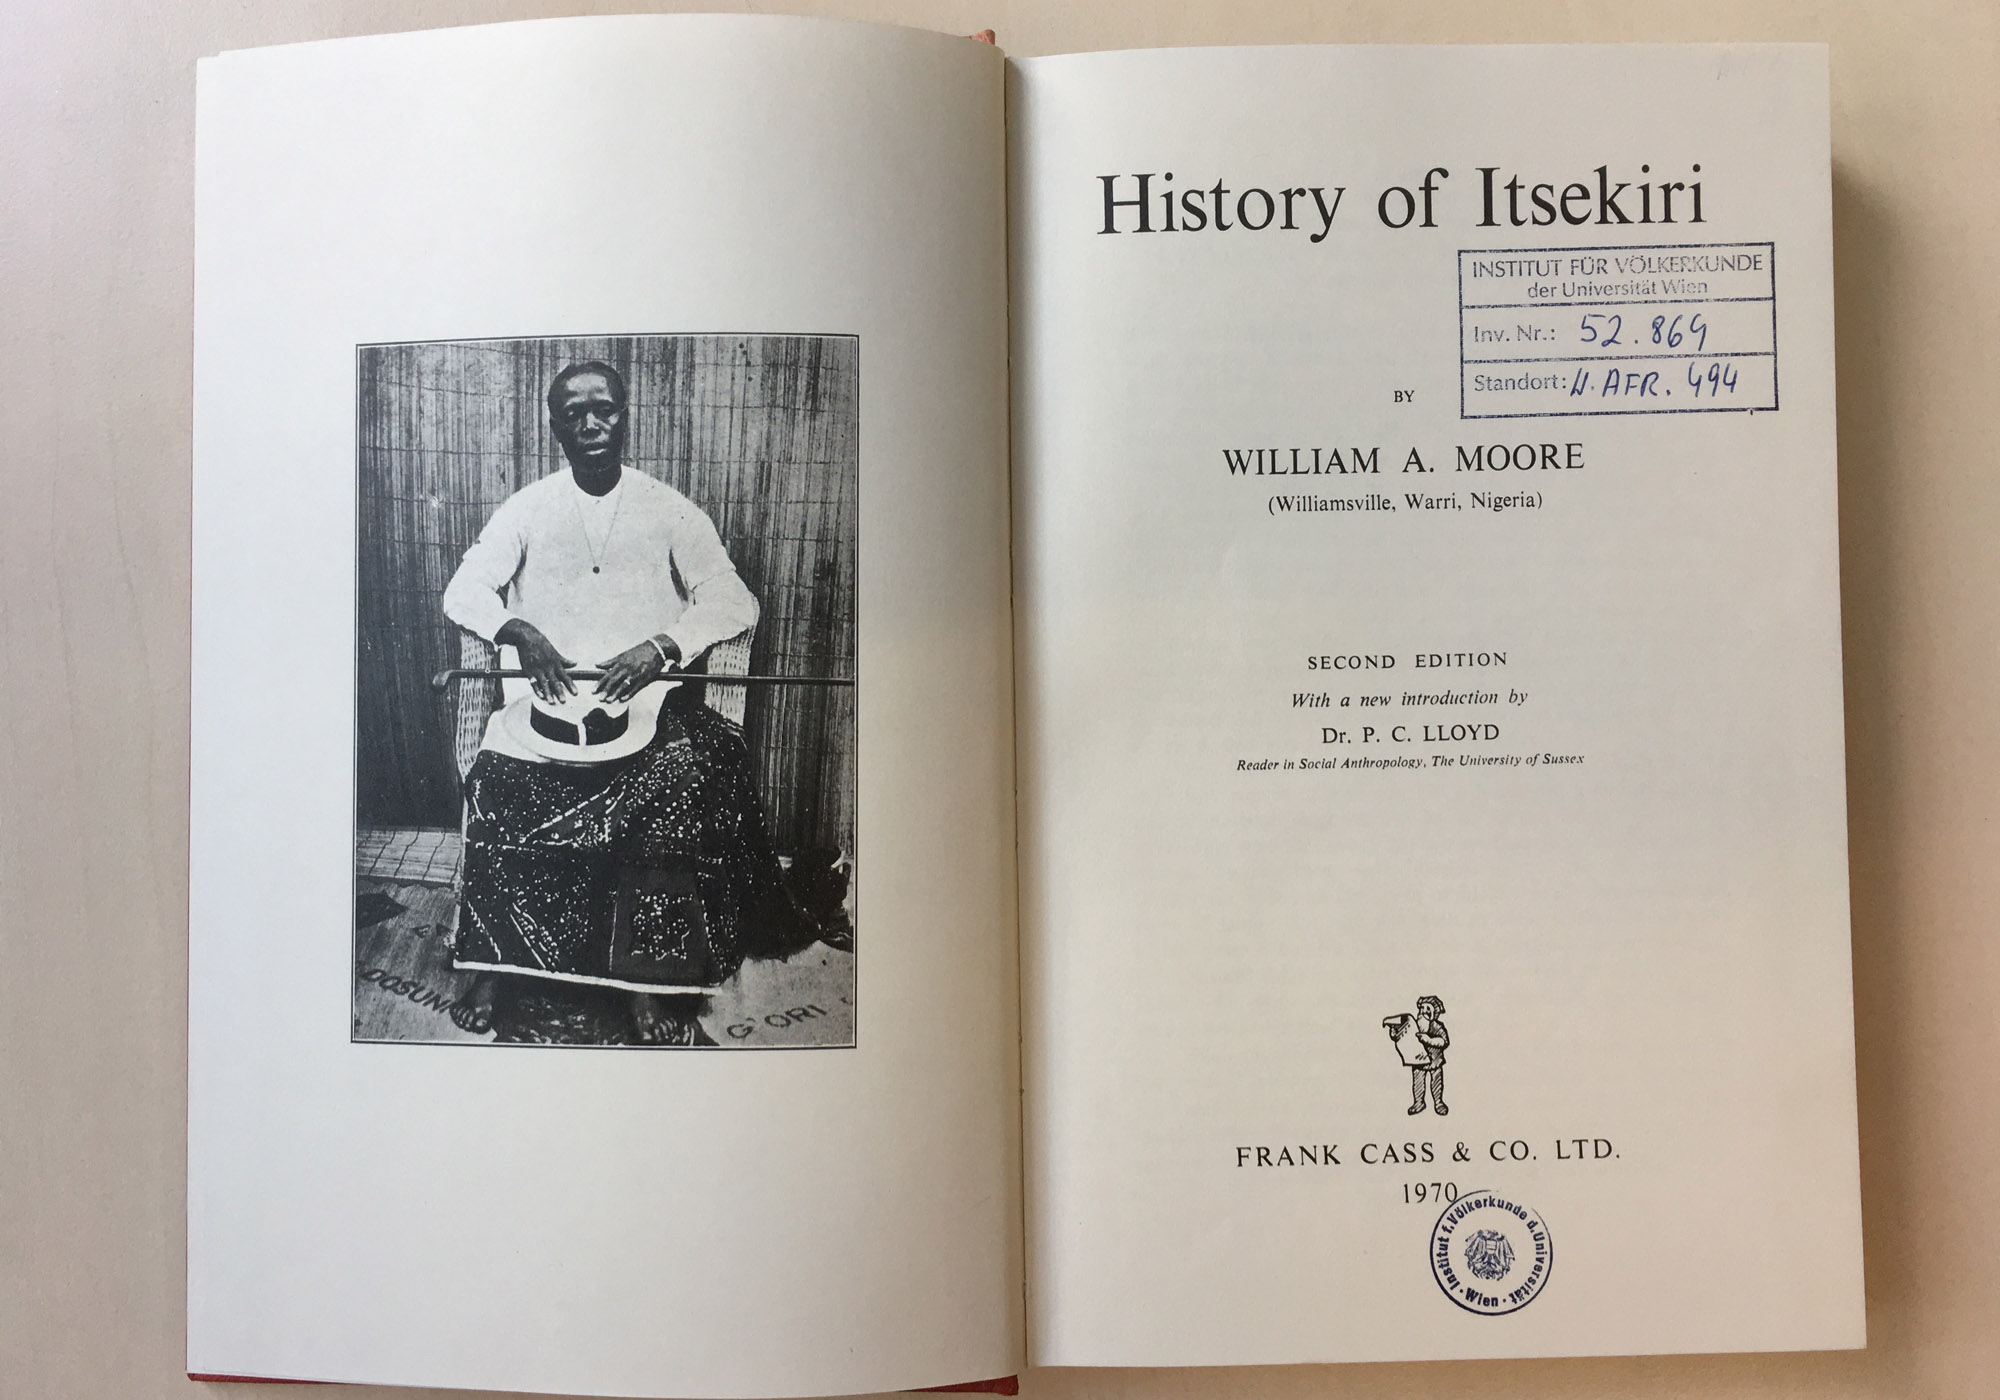 A book I read about the Itsekiri, an Eastern Yorùbá language group in Nigeria. I thought I could find some information about the Olukumi.